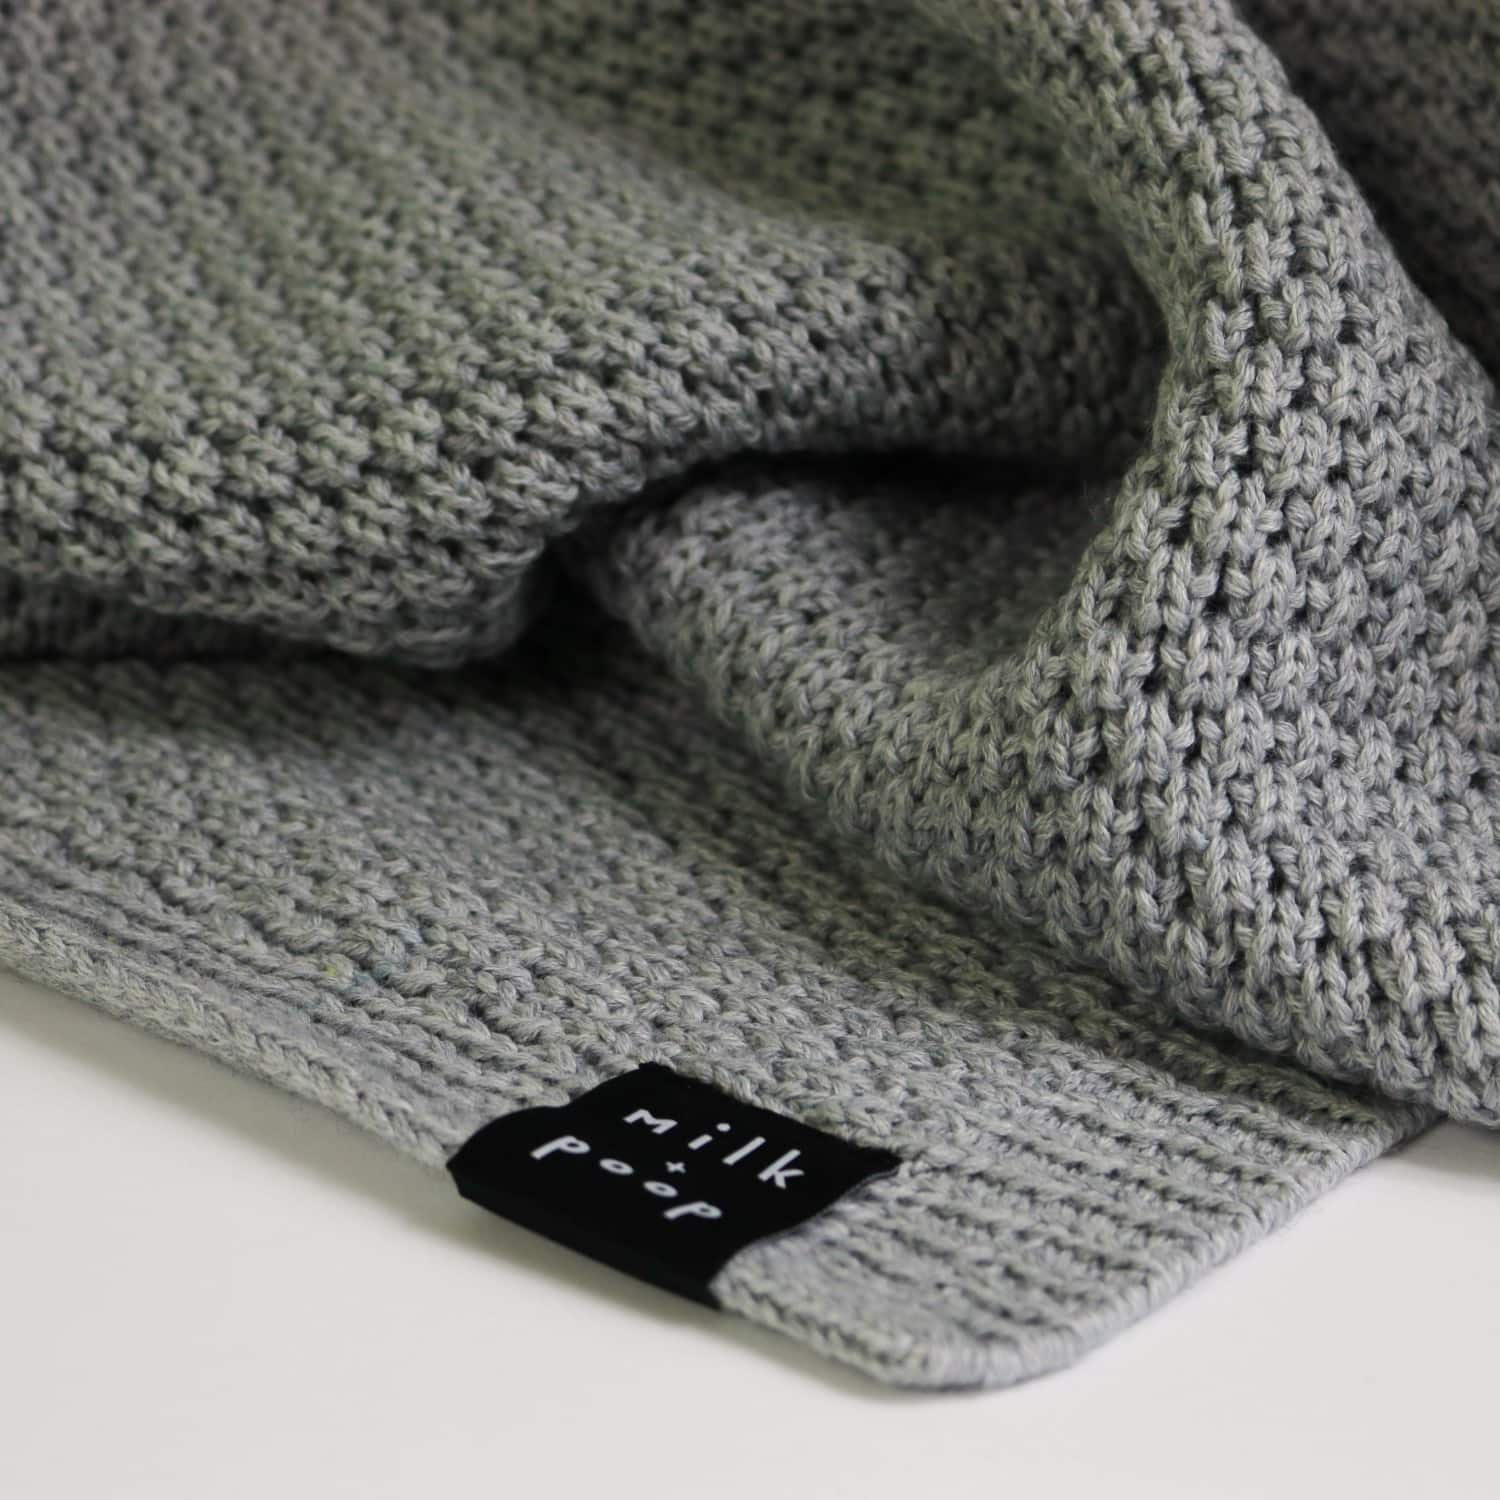 Knitted Merino Baby Blanket in Grey by Milk and Poop